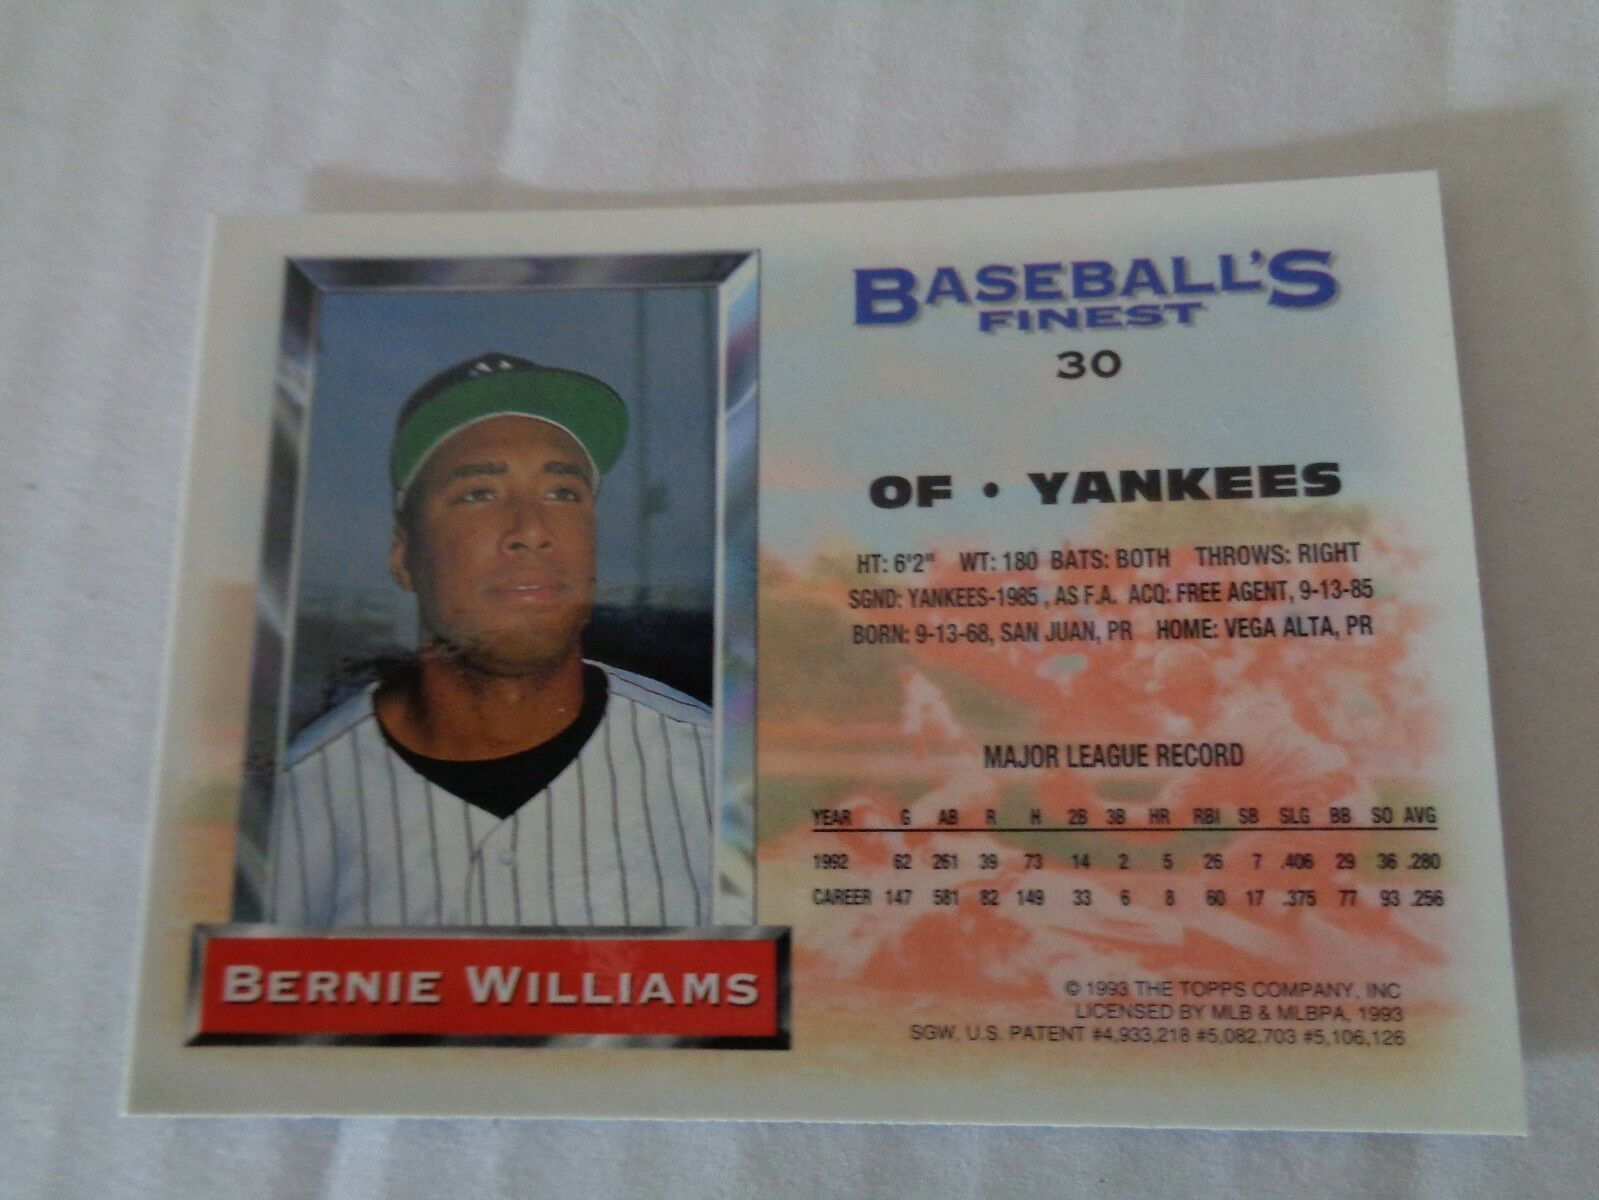 Bernie Williams 1993 Topps Finest Baseball Card #30 NY Yankees NM/M Condition image 3